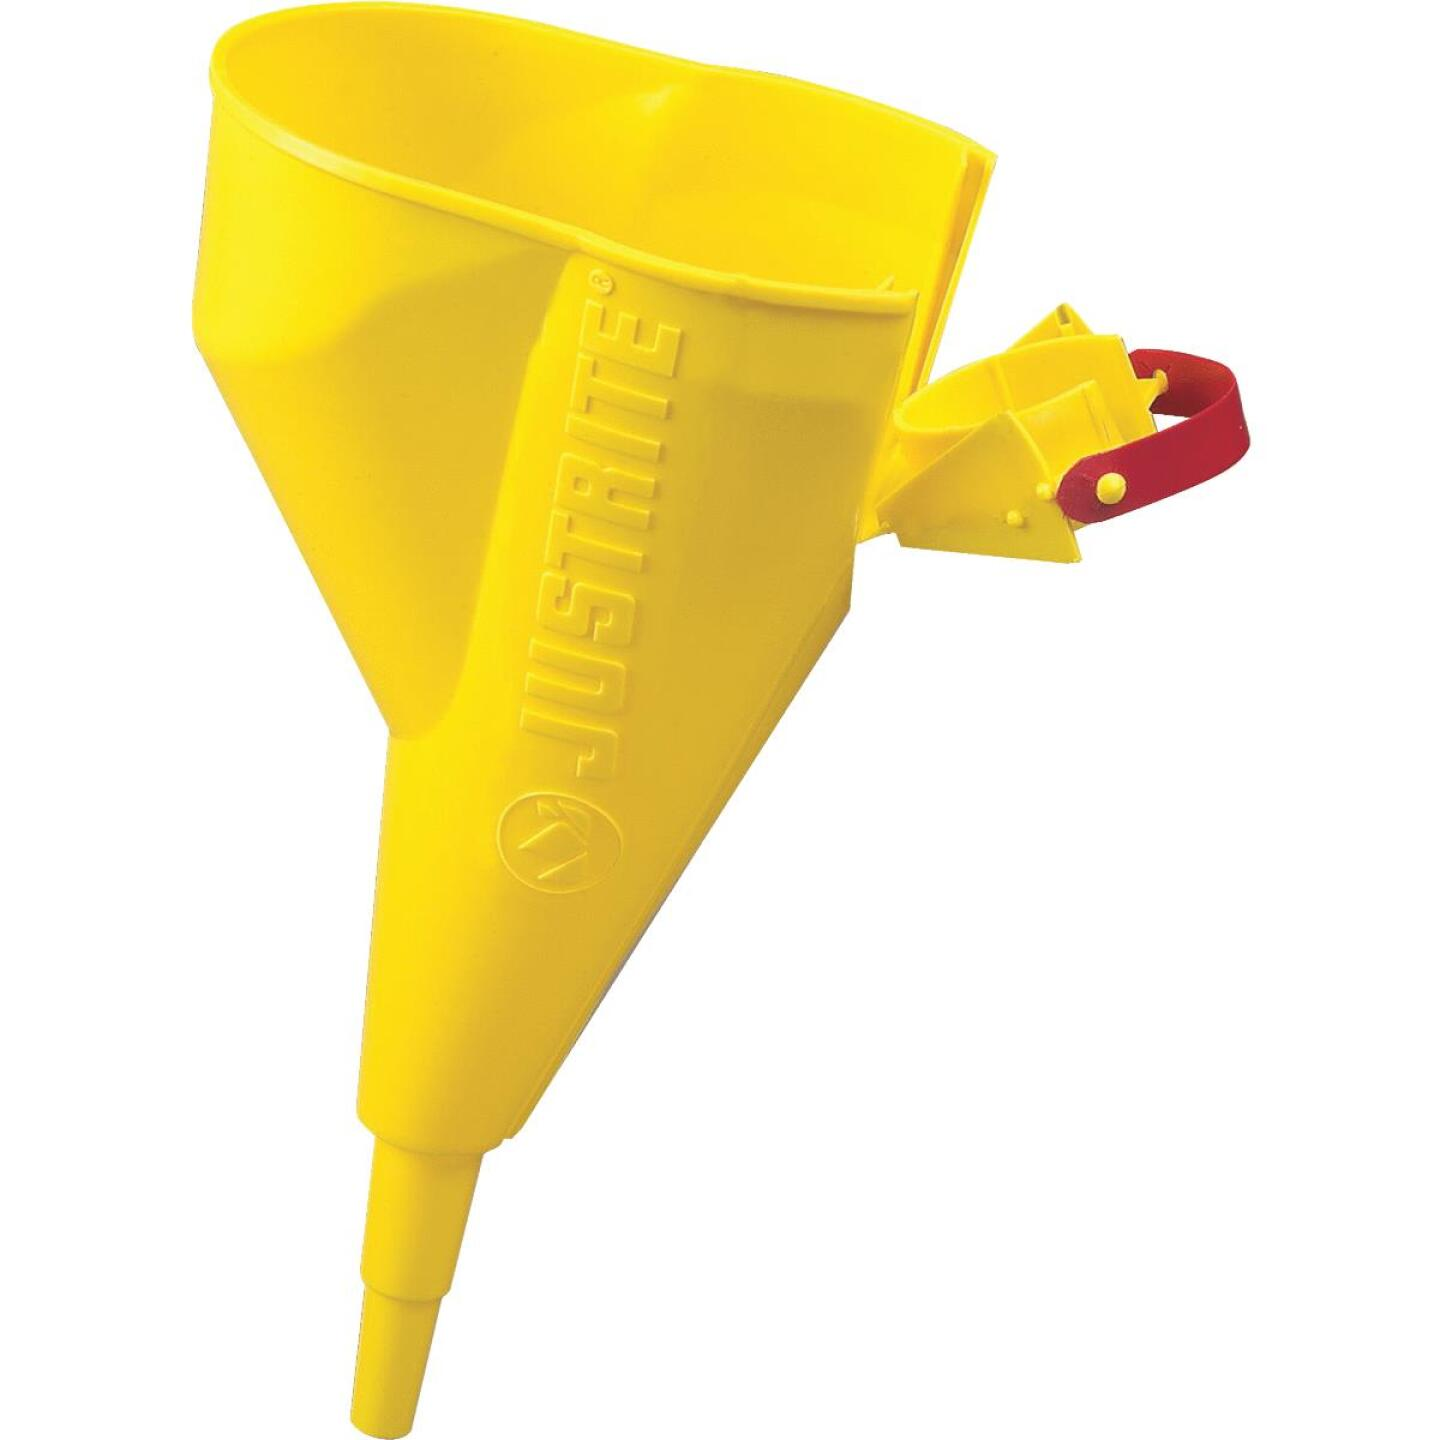 Justrite Polypropylene Type I Safety Can Funnel Image 1